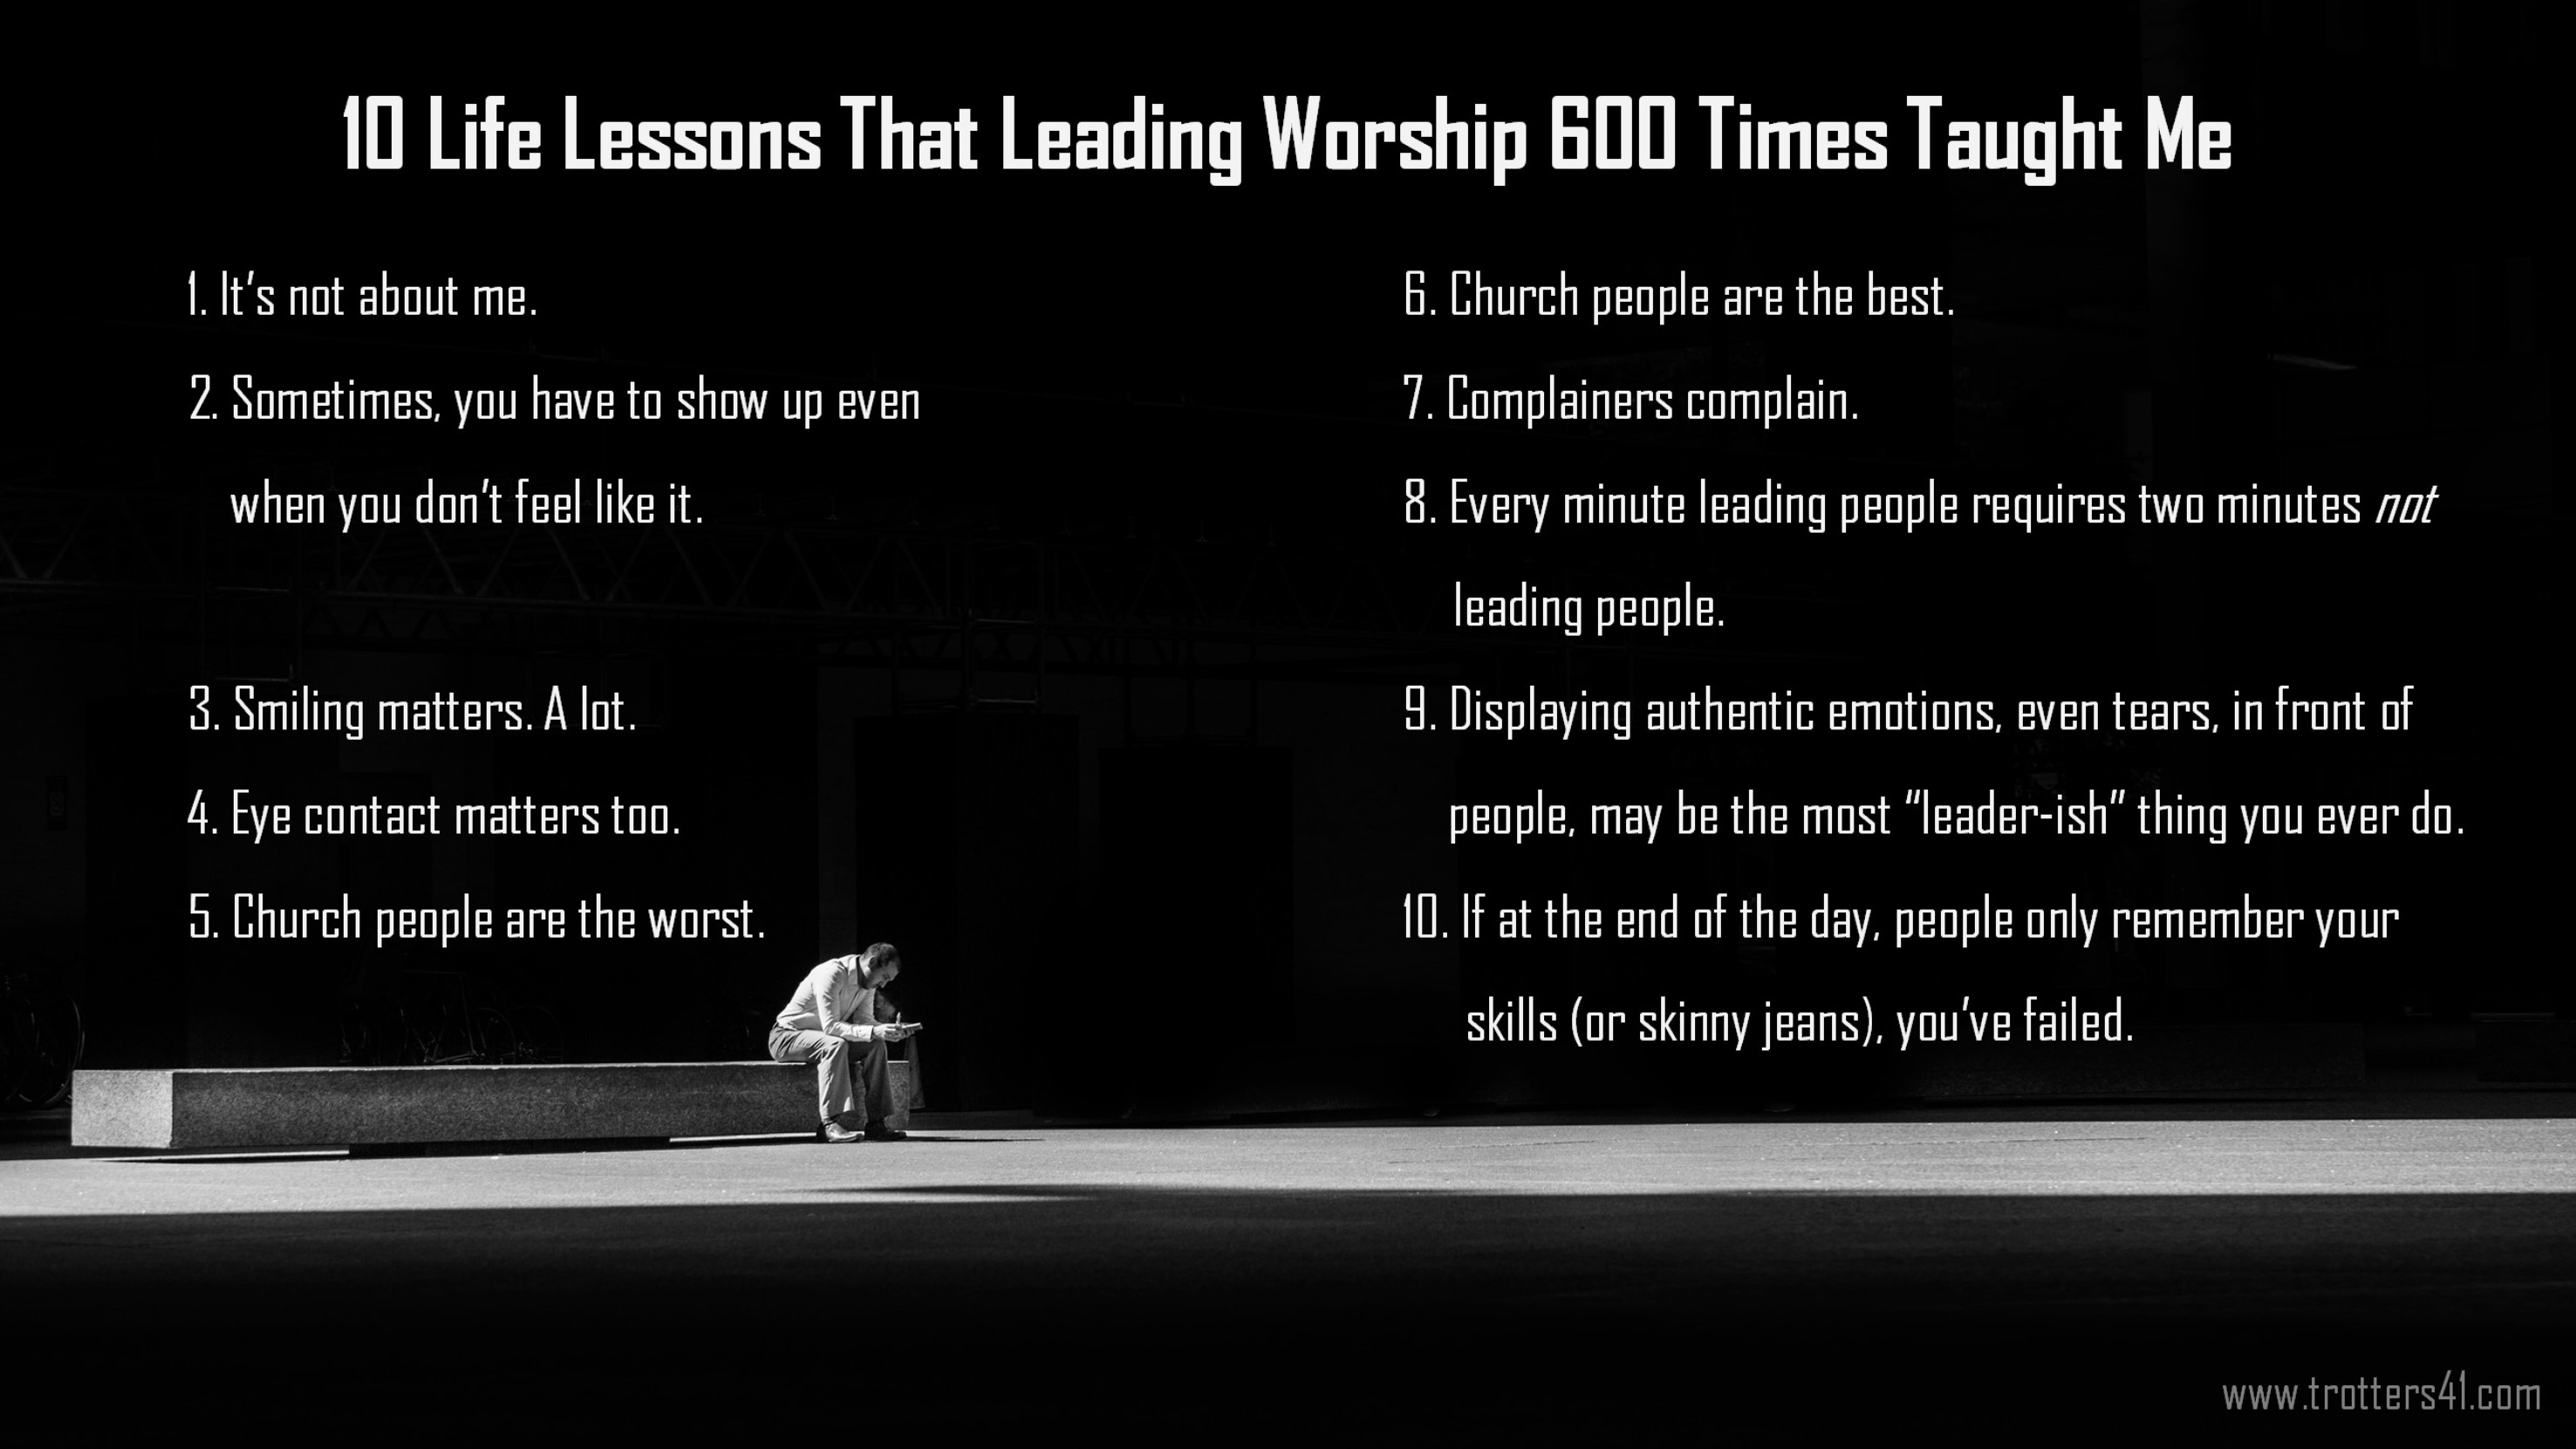 10 Life Lessons that leading worship 600 times taught me